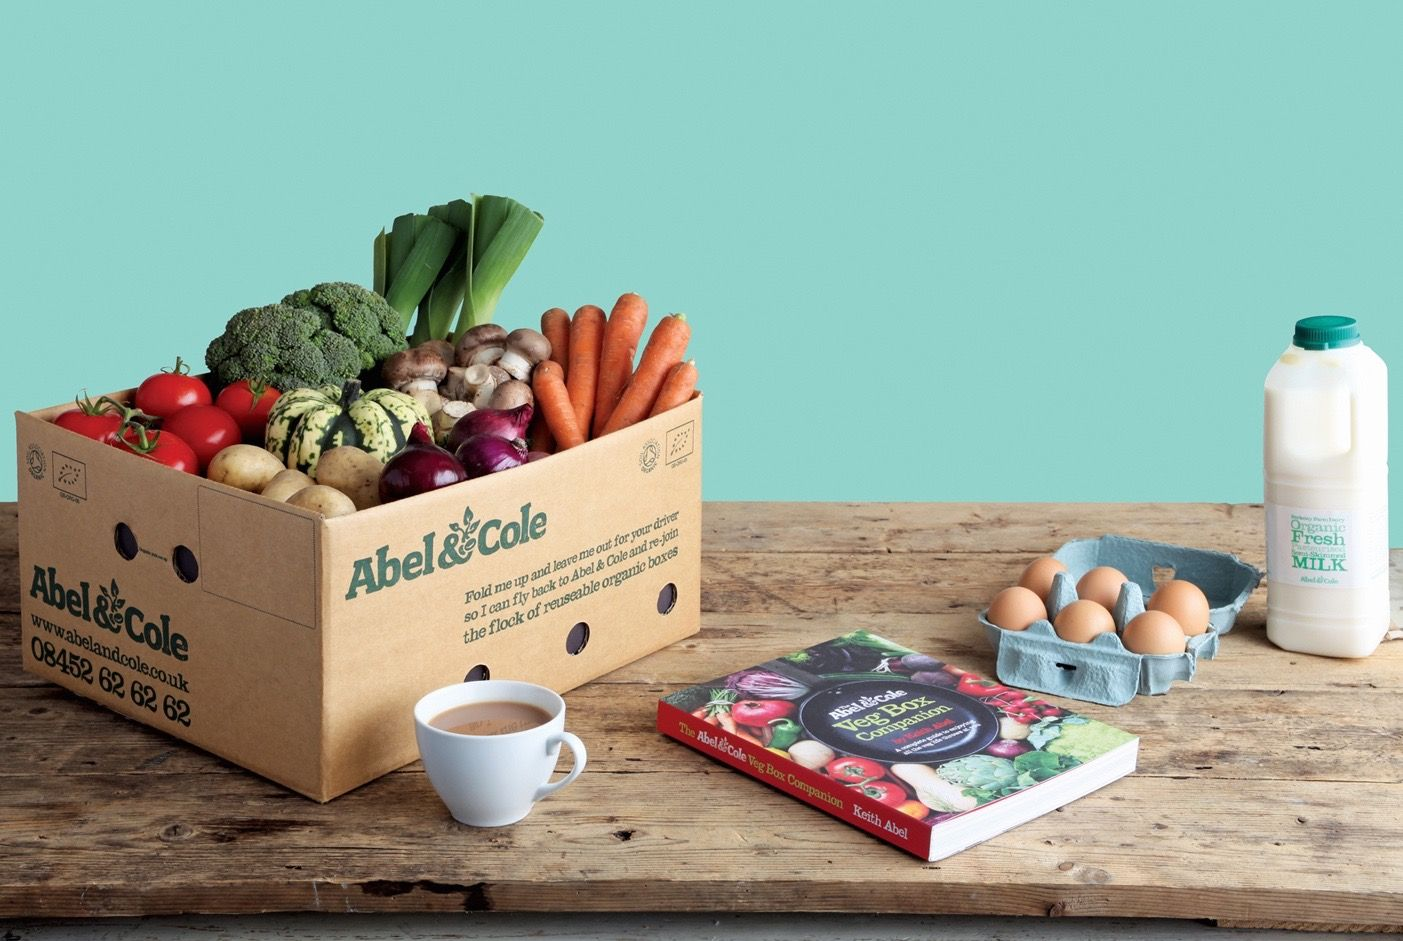 Abel & Cole, London: Ethical, eco, organic & seasonal grocery delivery